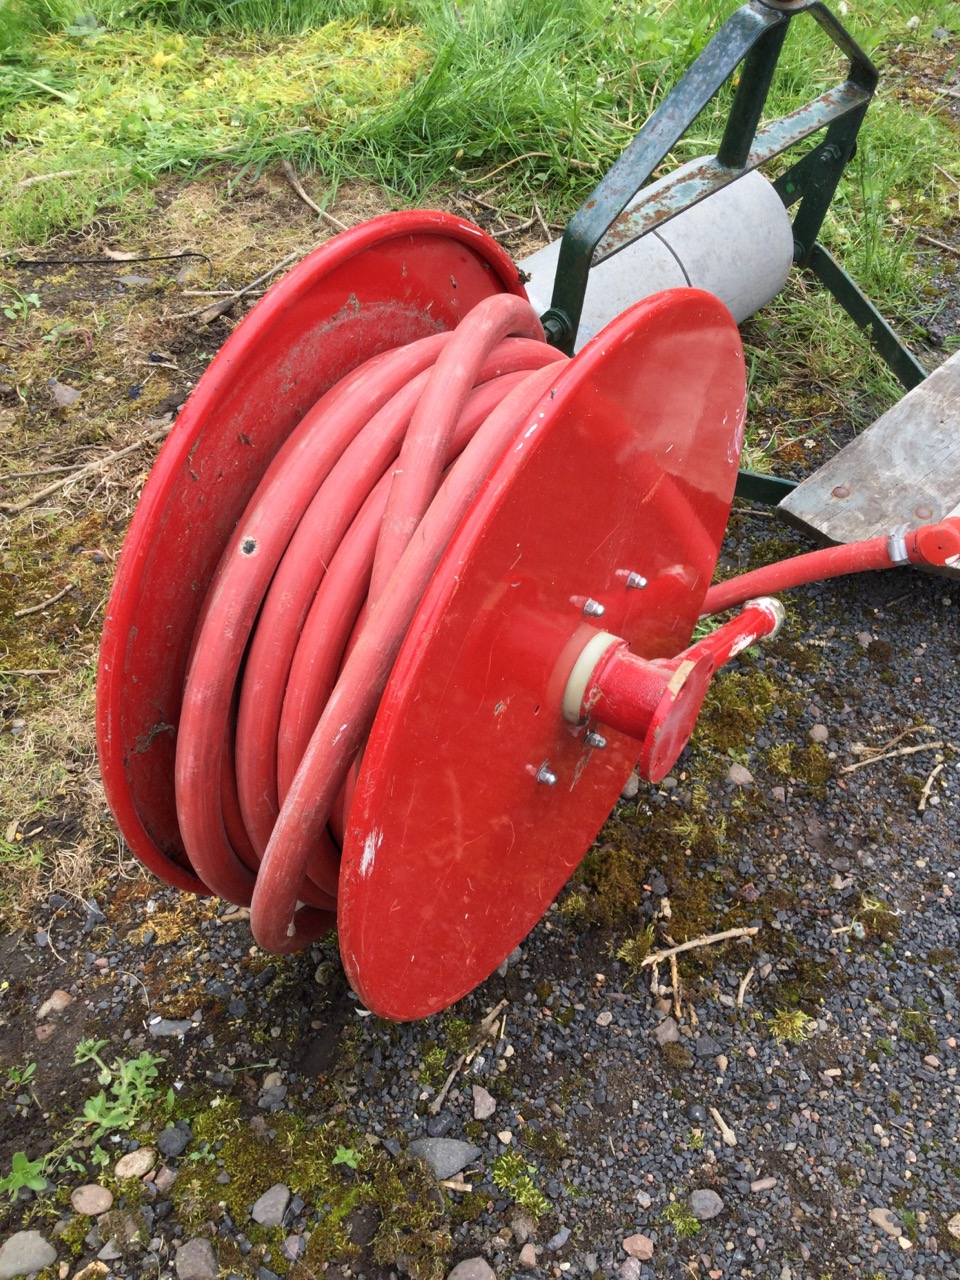 A firehose on reel complete with nozzle with tap; and a ride-on garden roller with tractor type seat - Image 2 of 3